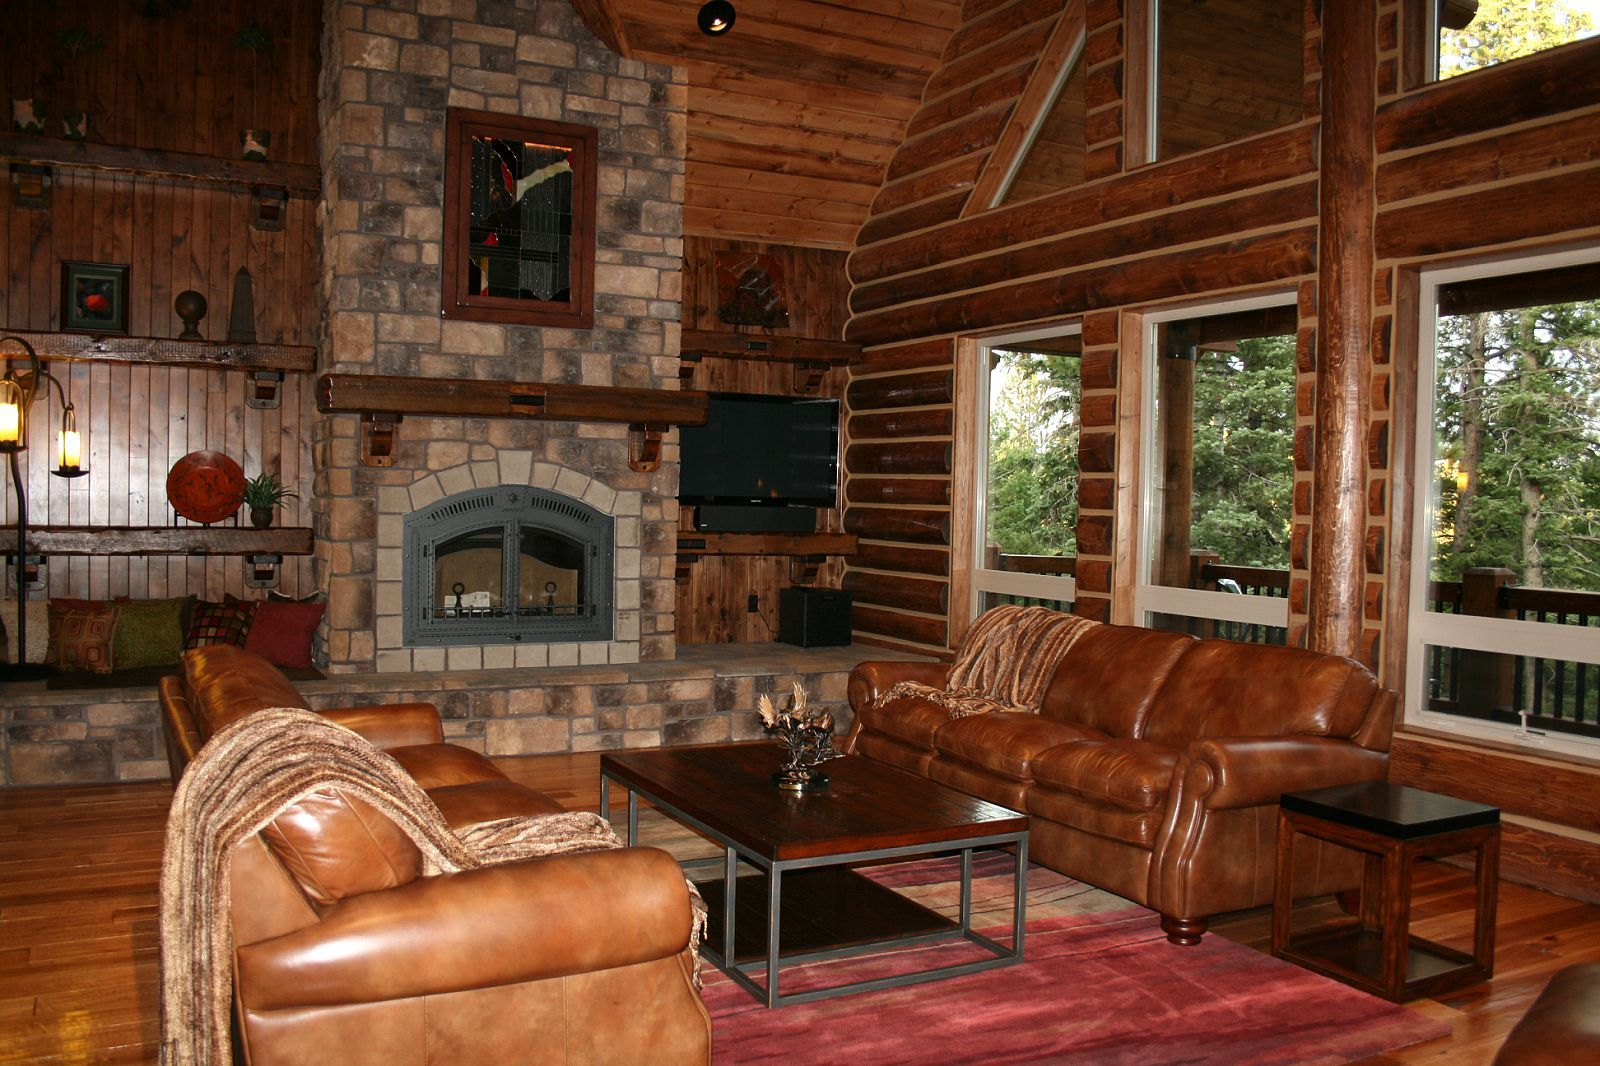 Log Cabin Design Ideas 21 rustic log cabin interior design ideas Log Home Floor Plans